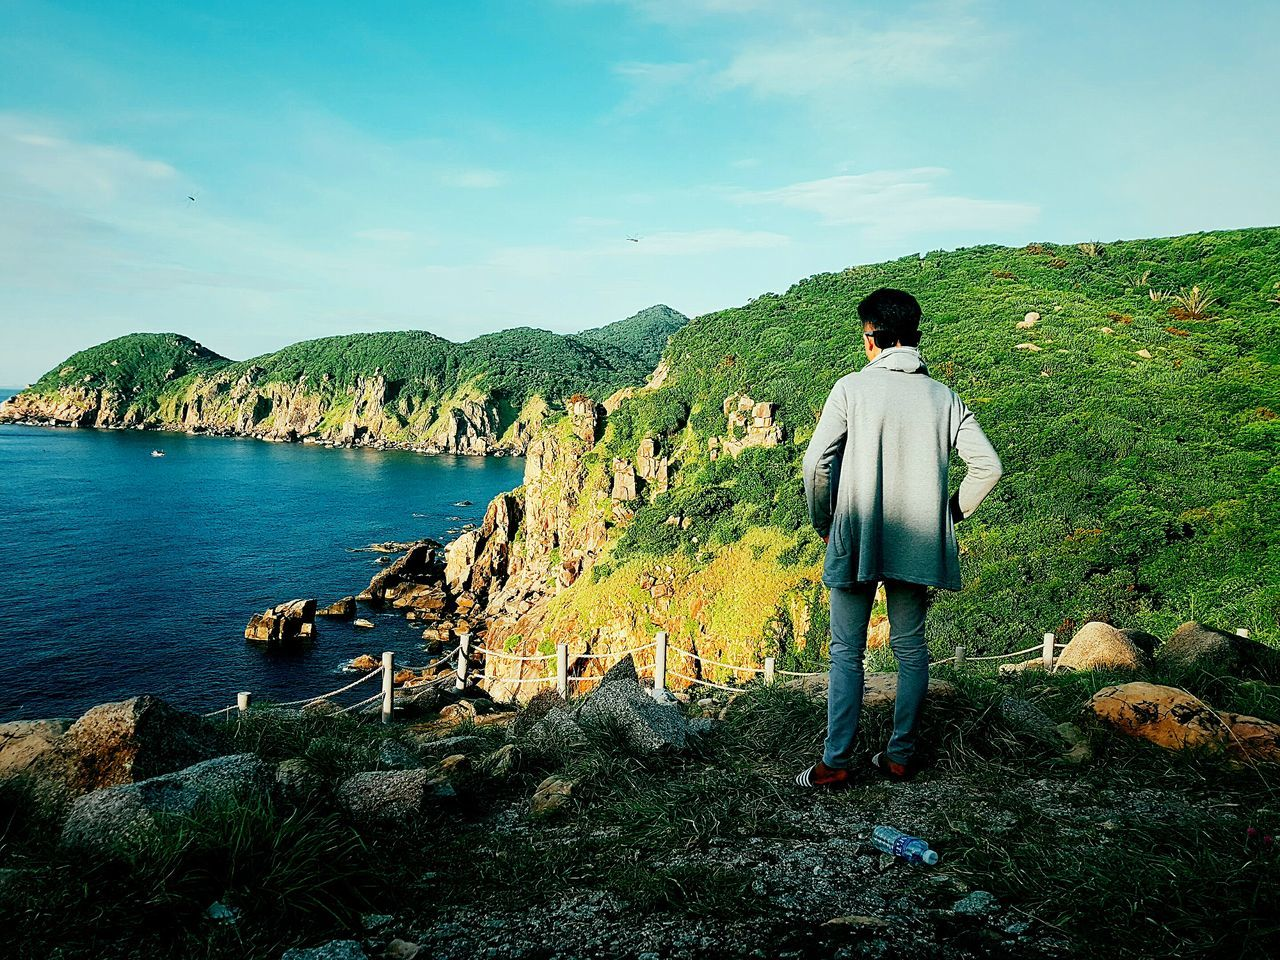 real people, one person, full length, rear view, nature, day, casual clothing, men, lifestyles, standing, leisure activity, rock - object, scenics, beauty in nature, sky, outdoors, tranquil scene, tree, mountain, water, young adult, one man only, people